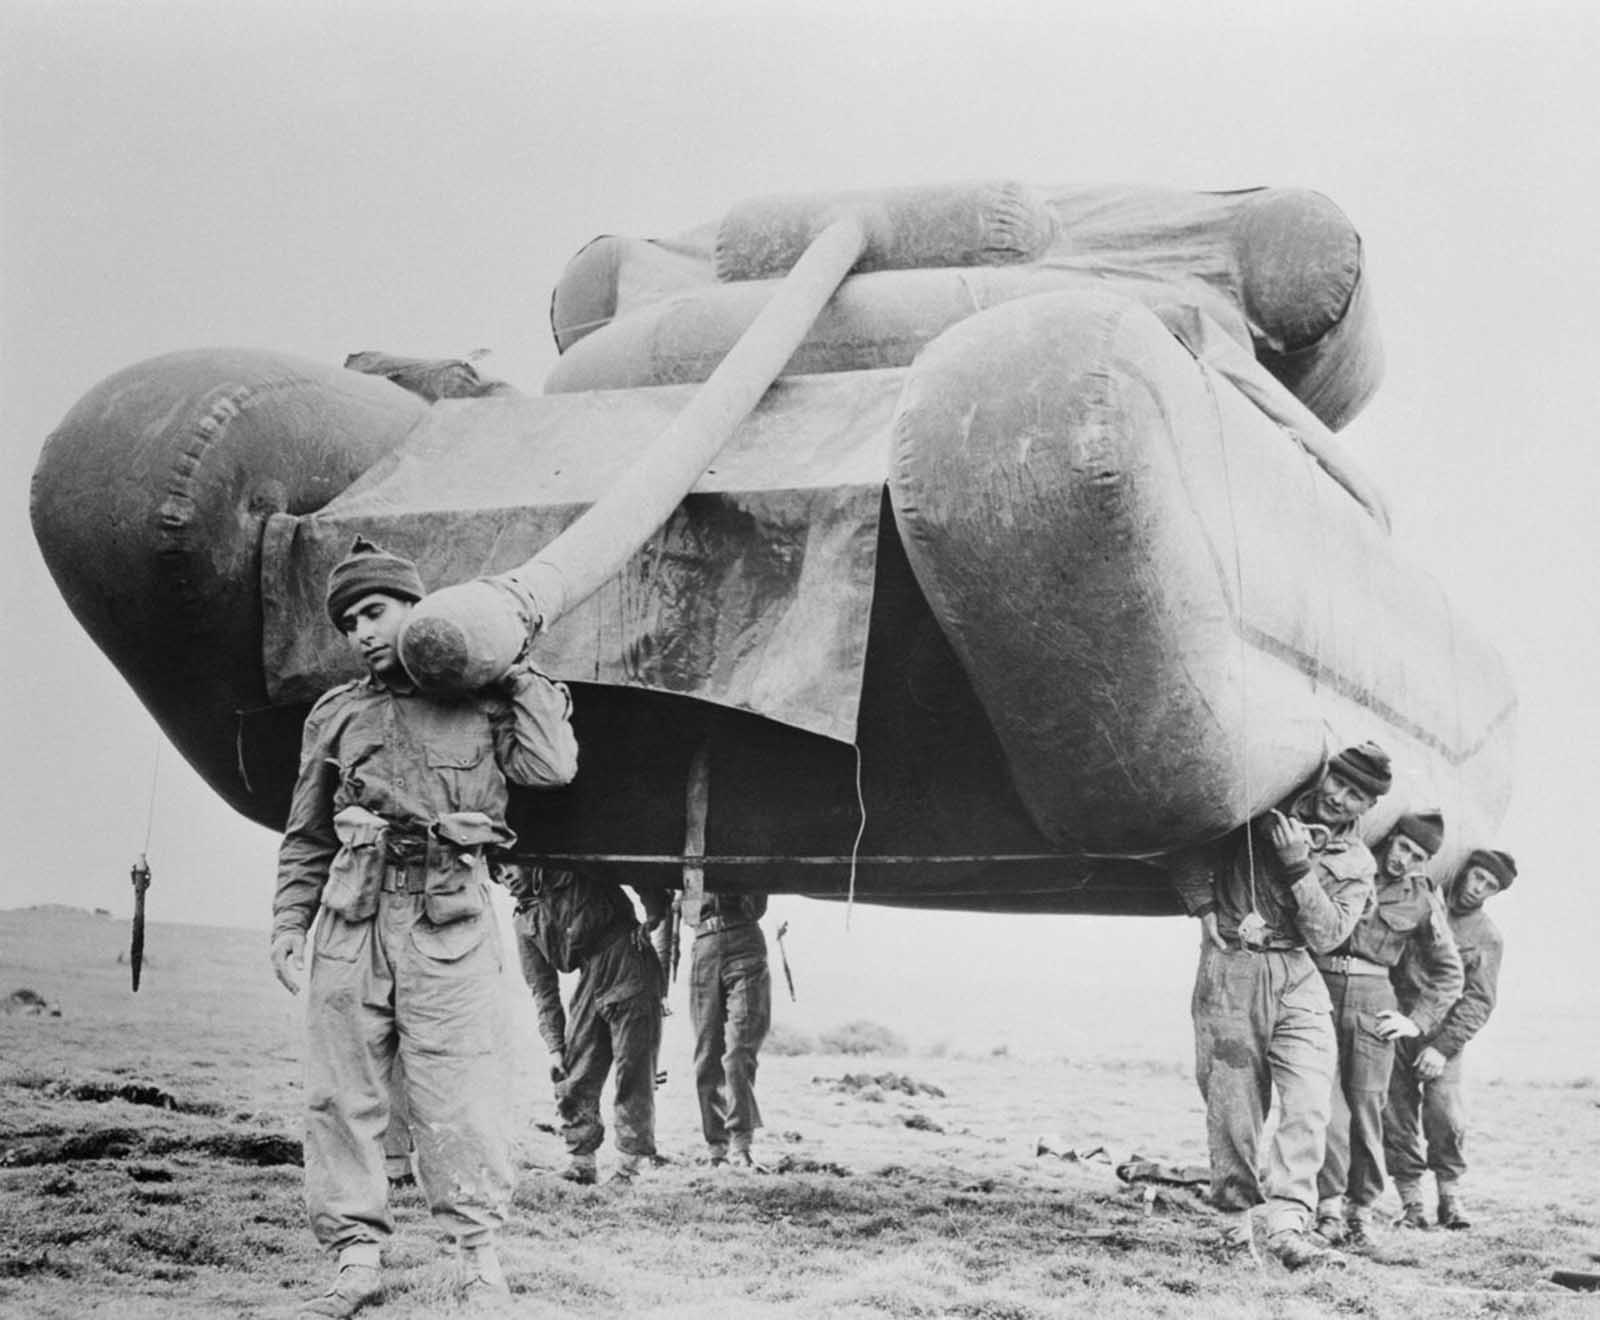 British soldiers hoist an inflatable dummy tank during exercises on Salisbury Plain (after the war ended).